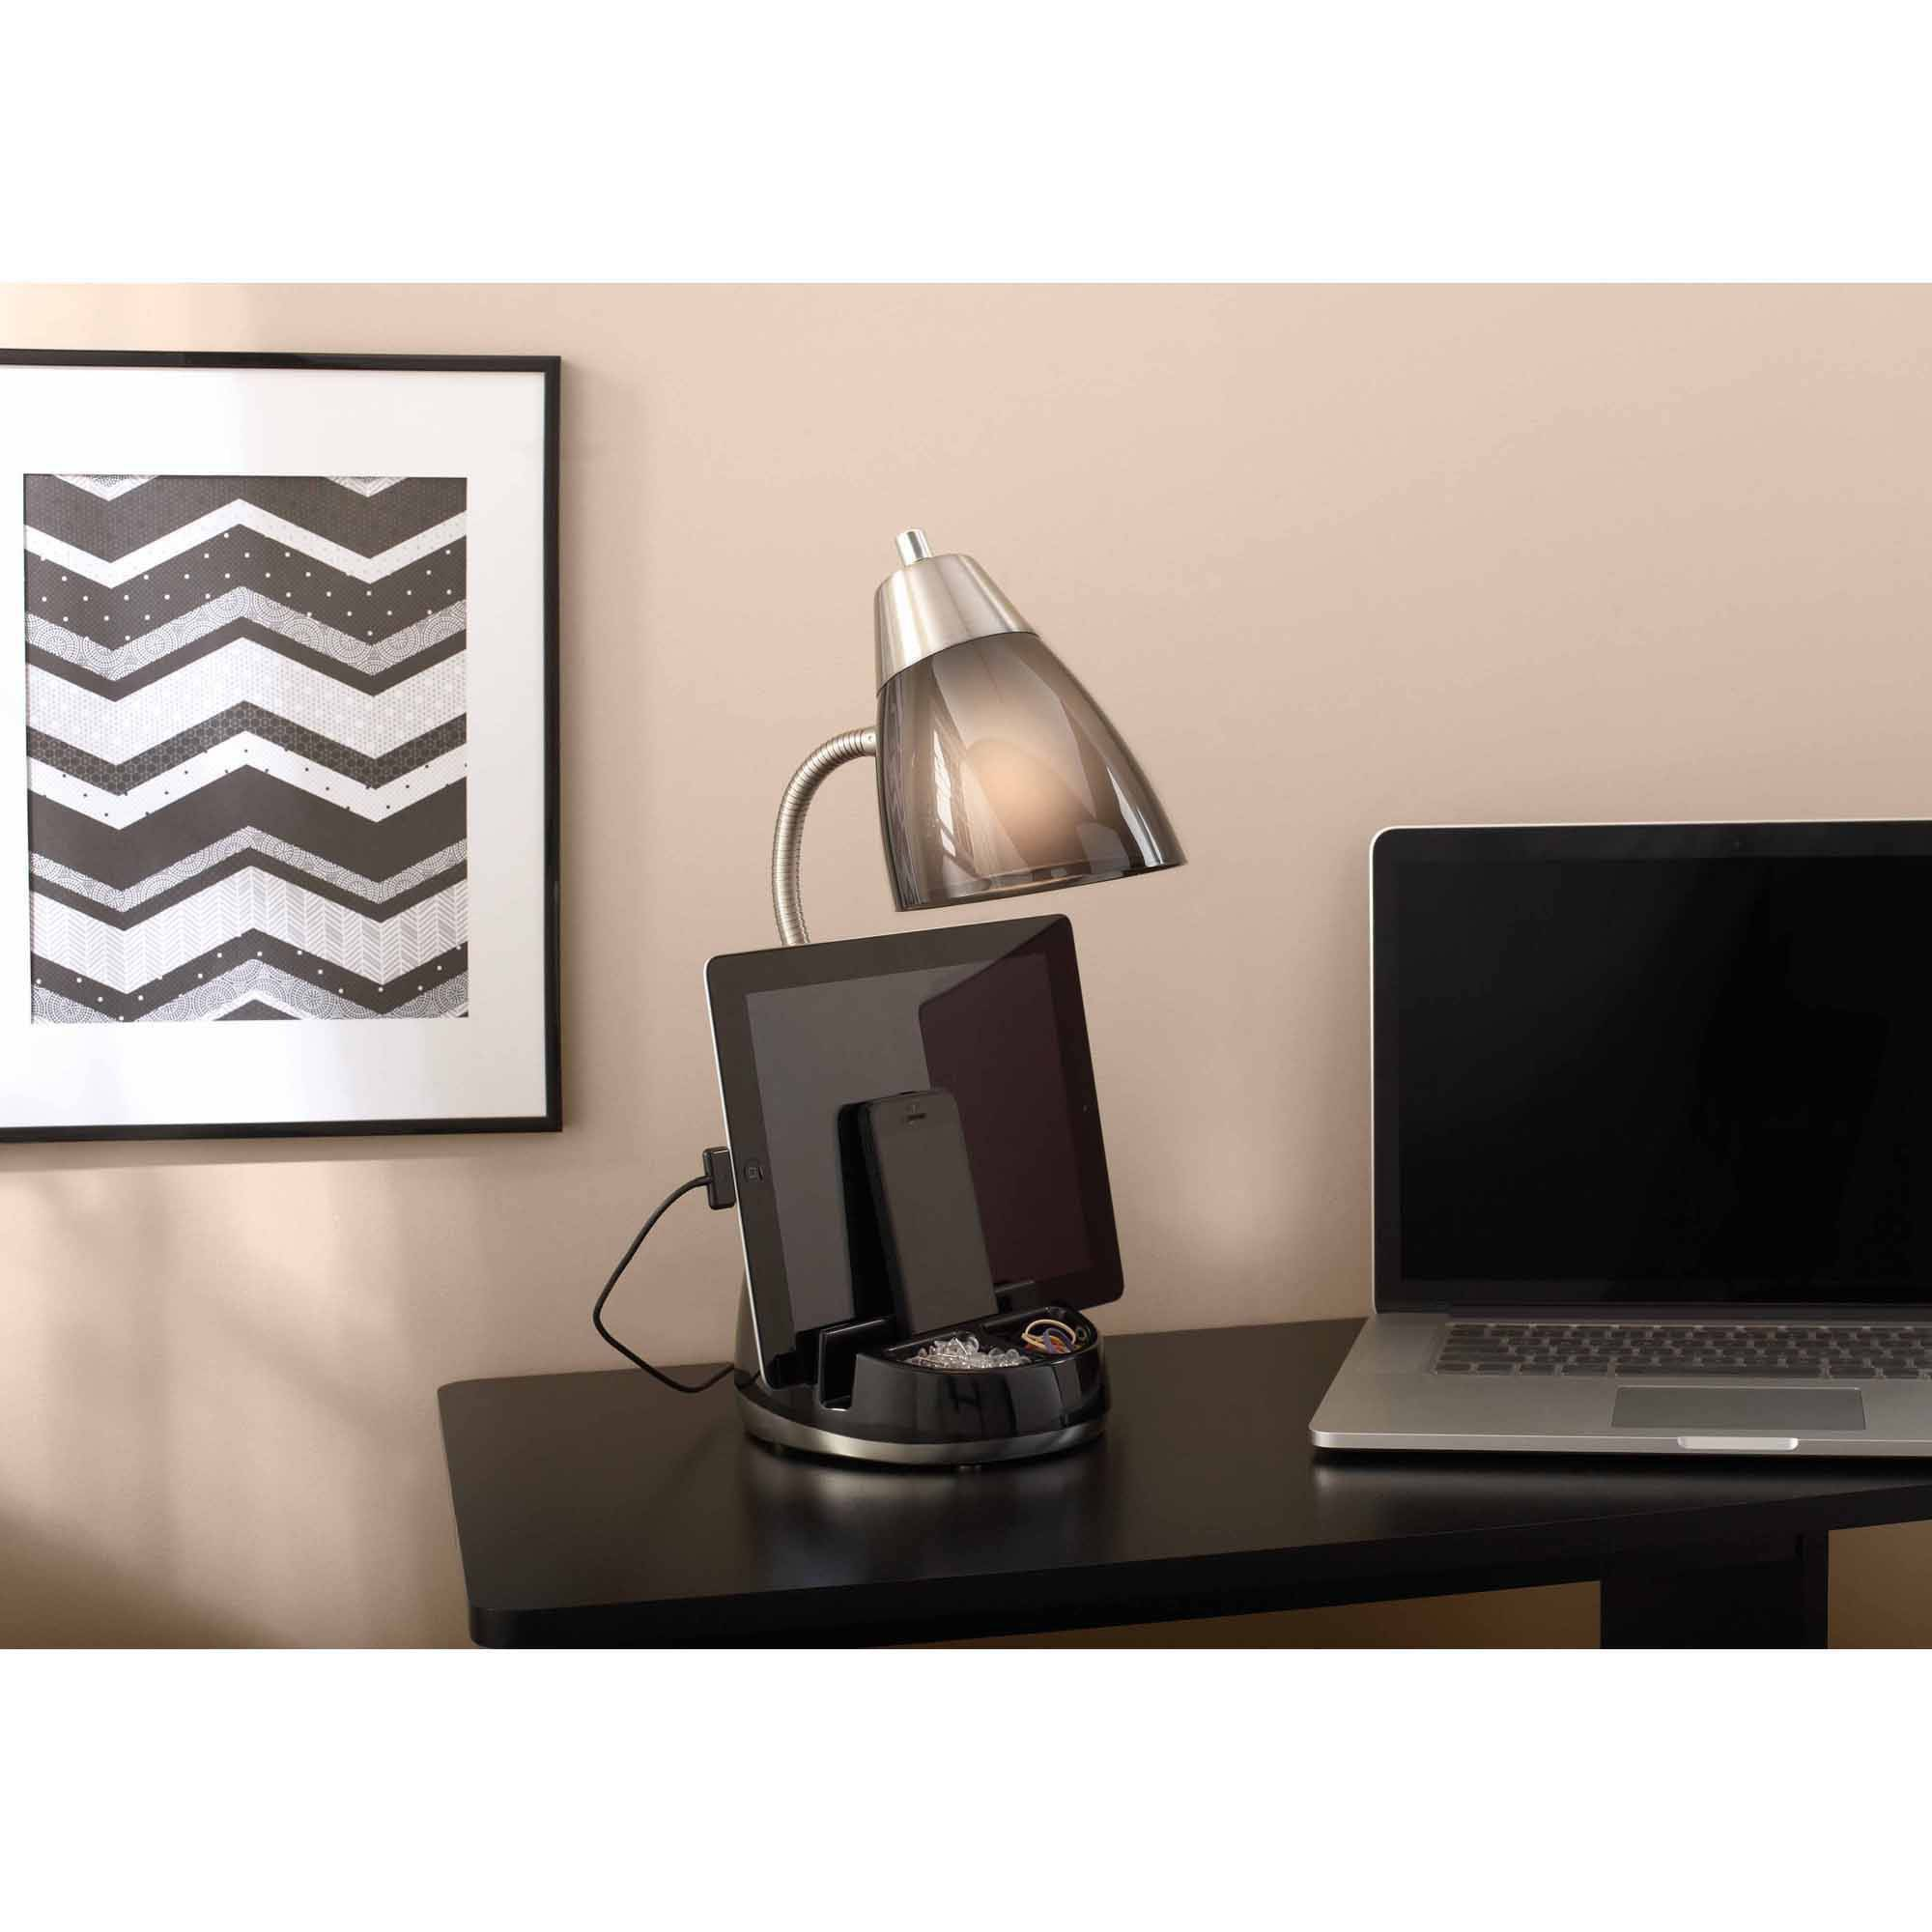 Mainstays Tablet Organizer Desk Lamp with CFL Bulb